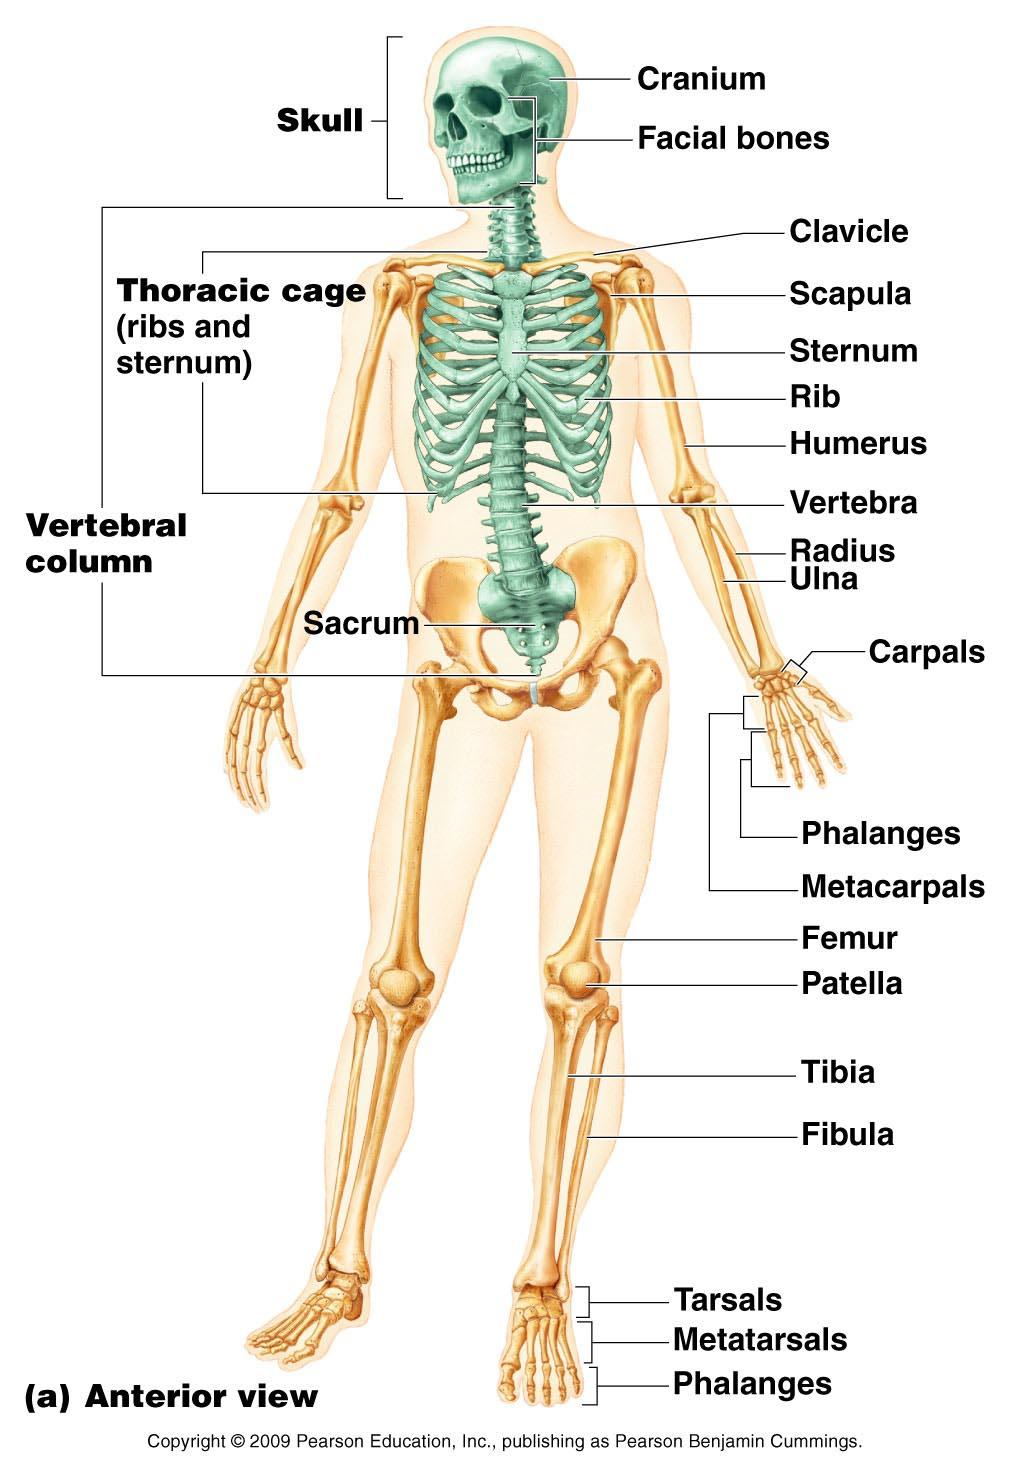 The Skeletal System Part A Powerpoint Lecture Slide Presentation By